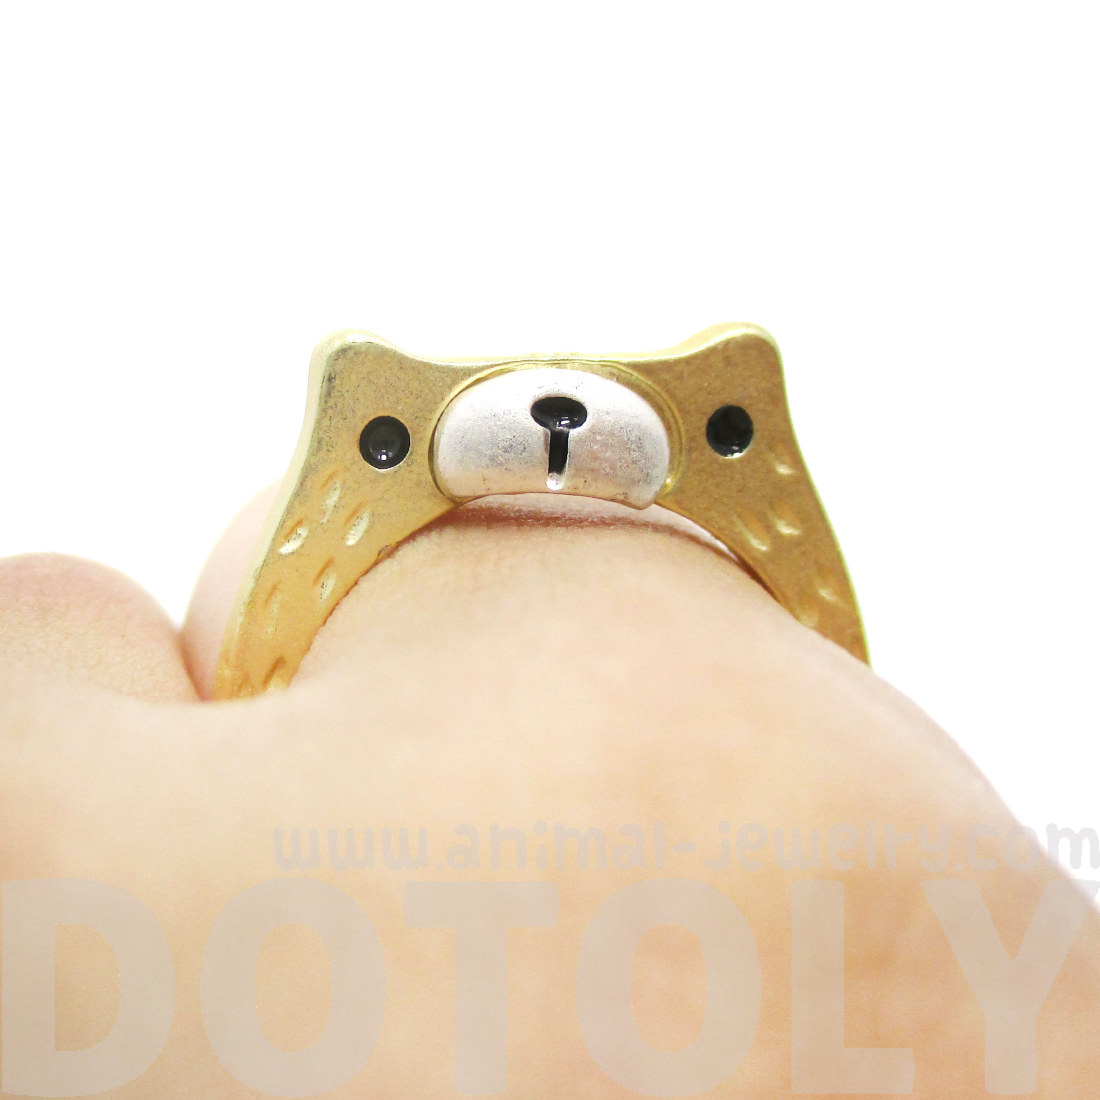 Bear In Hing Reng 2: Teddy Bear Face Shaped Animal Ring In Gold With Textured